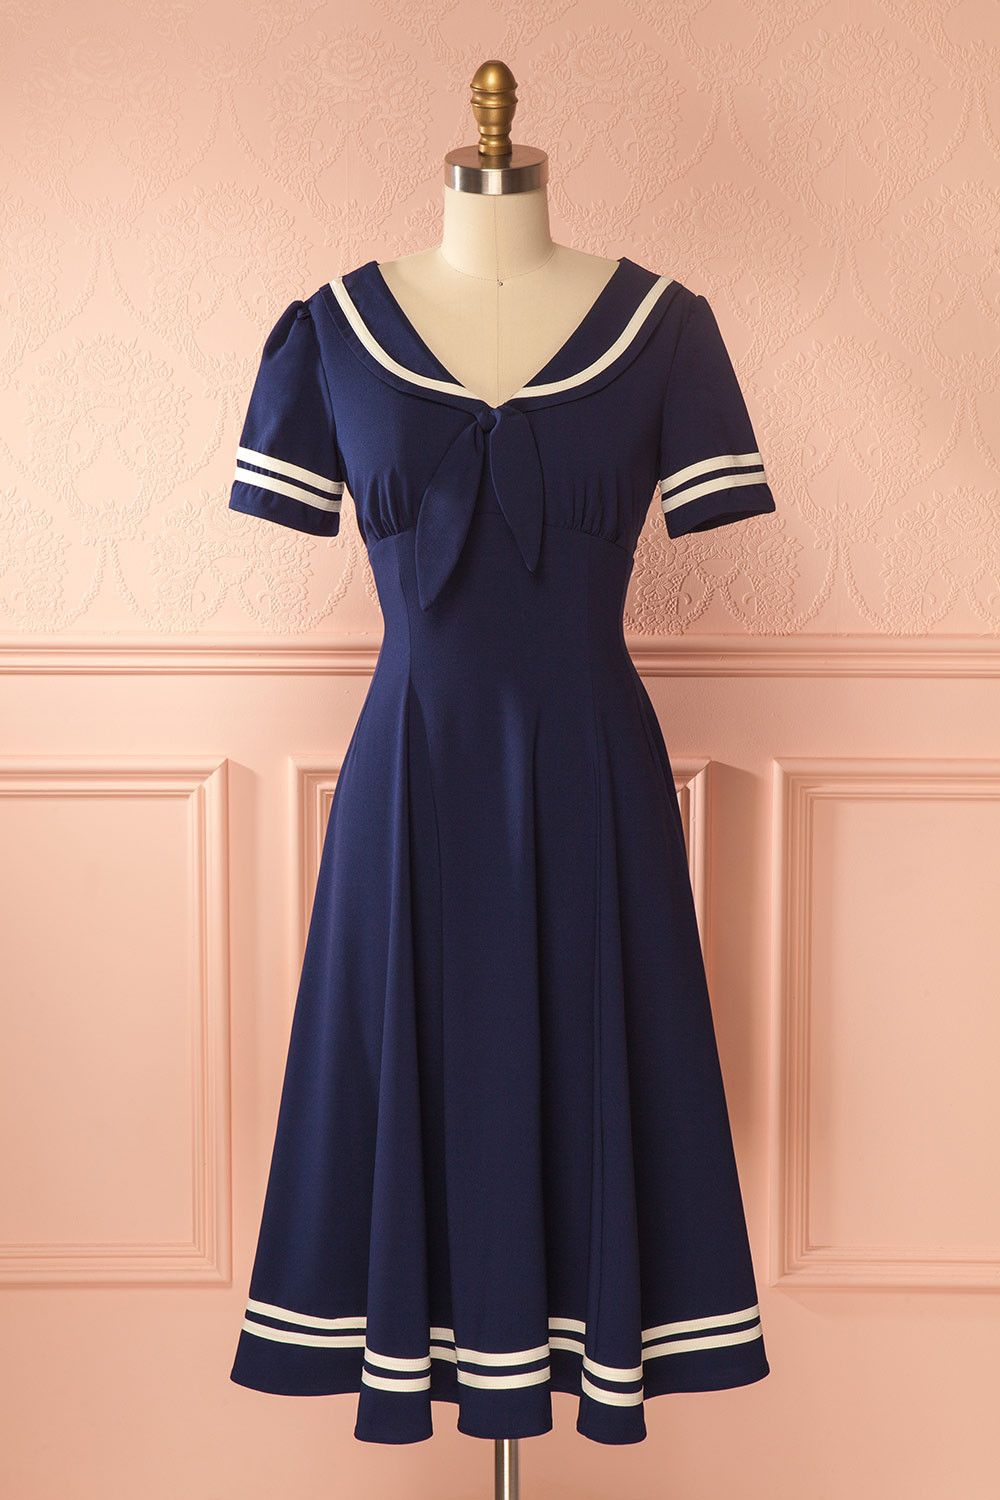 Evana ocean fashion pinterest dresses sailor dress and